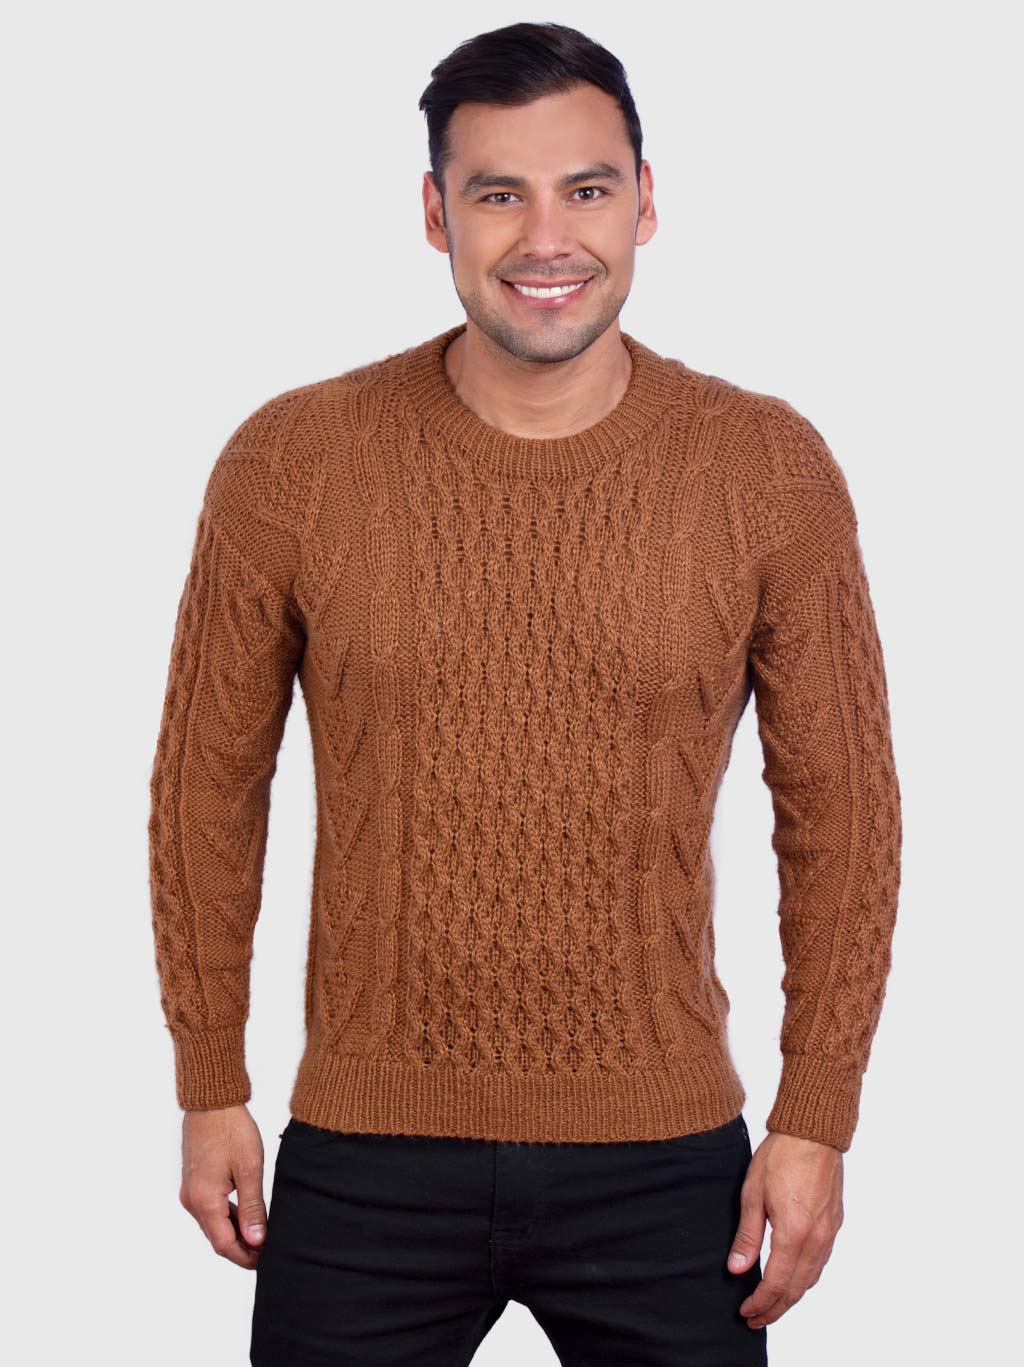 Hand knit Warm Ochre Aran Alpaca Sweater for Men